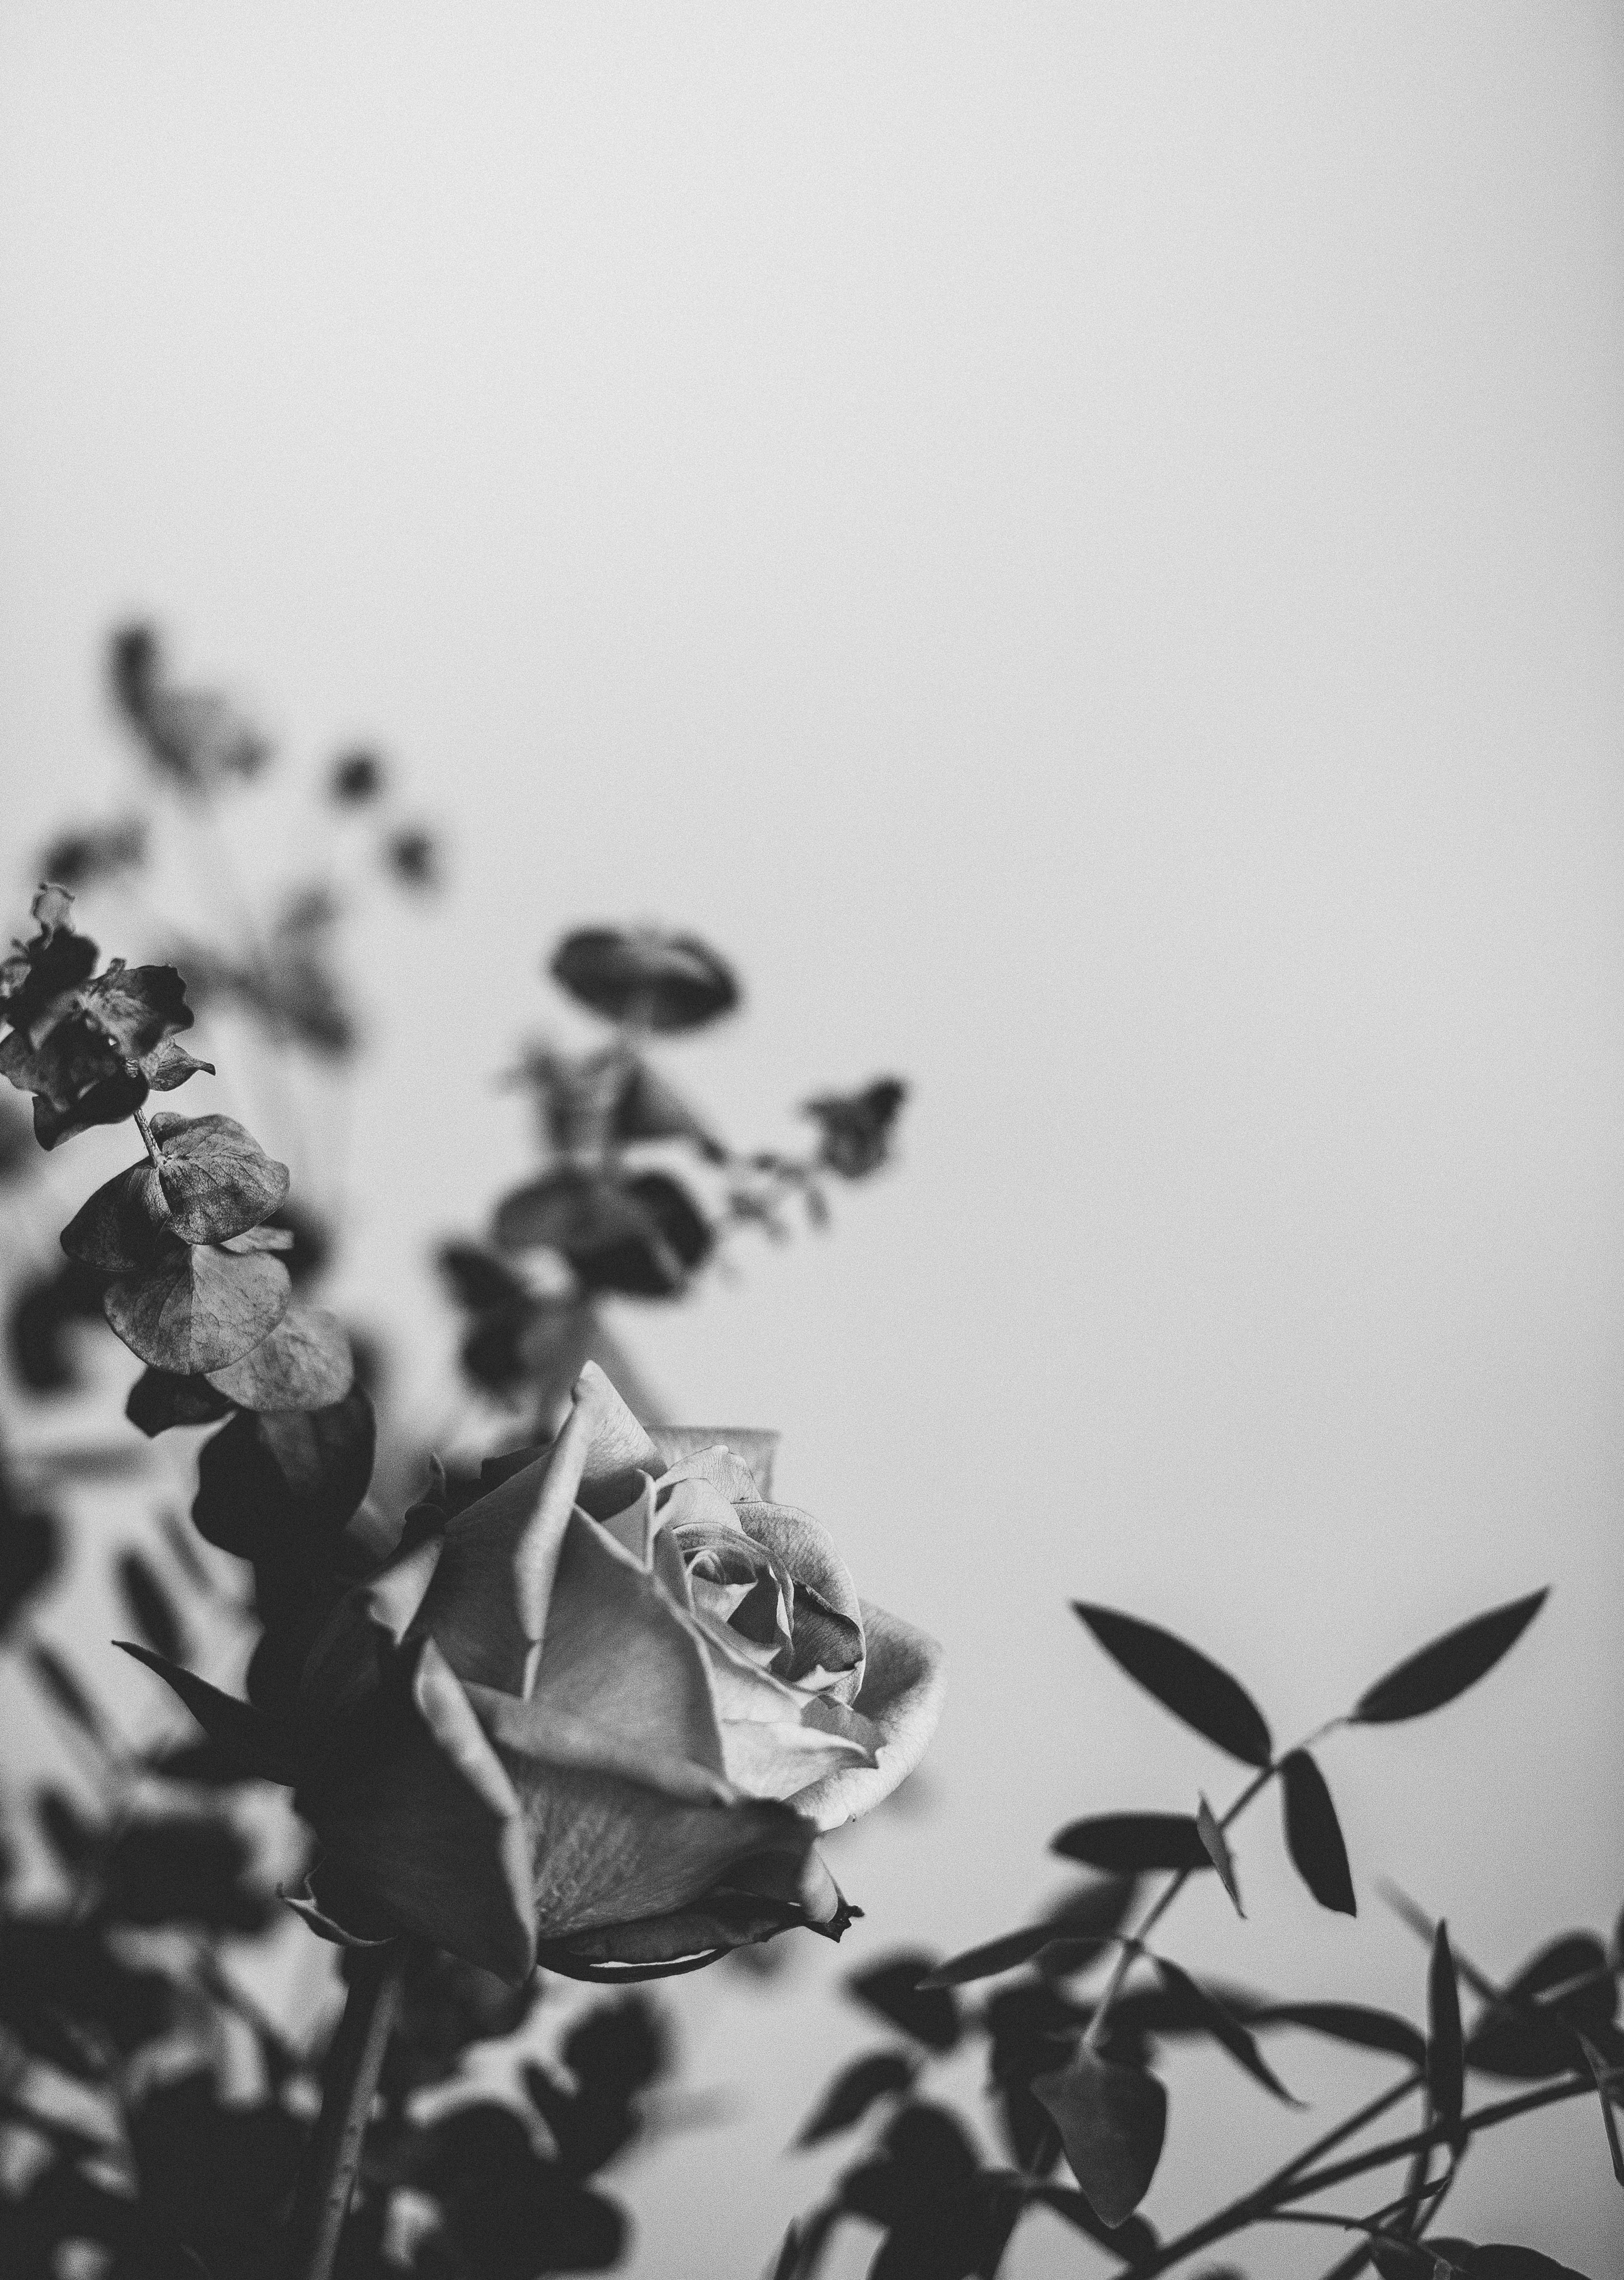 gray scale photo of rose flower